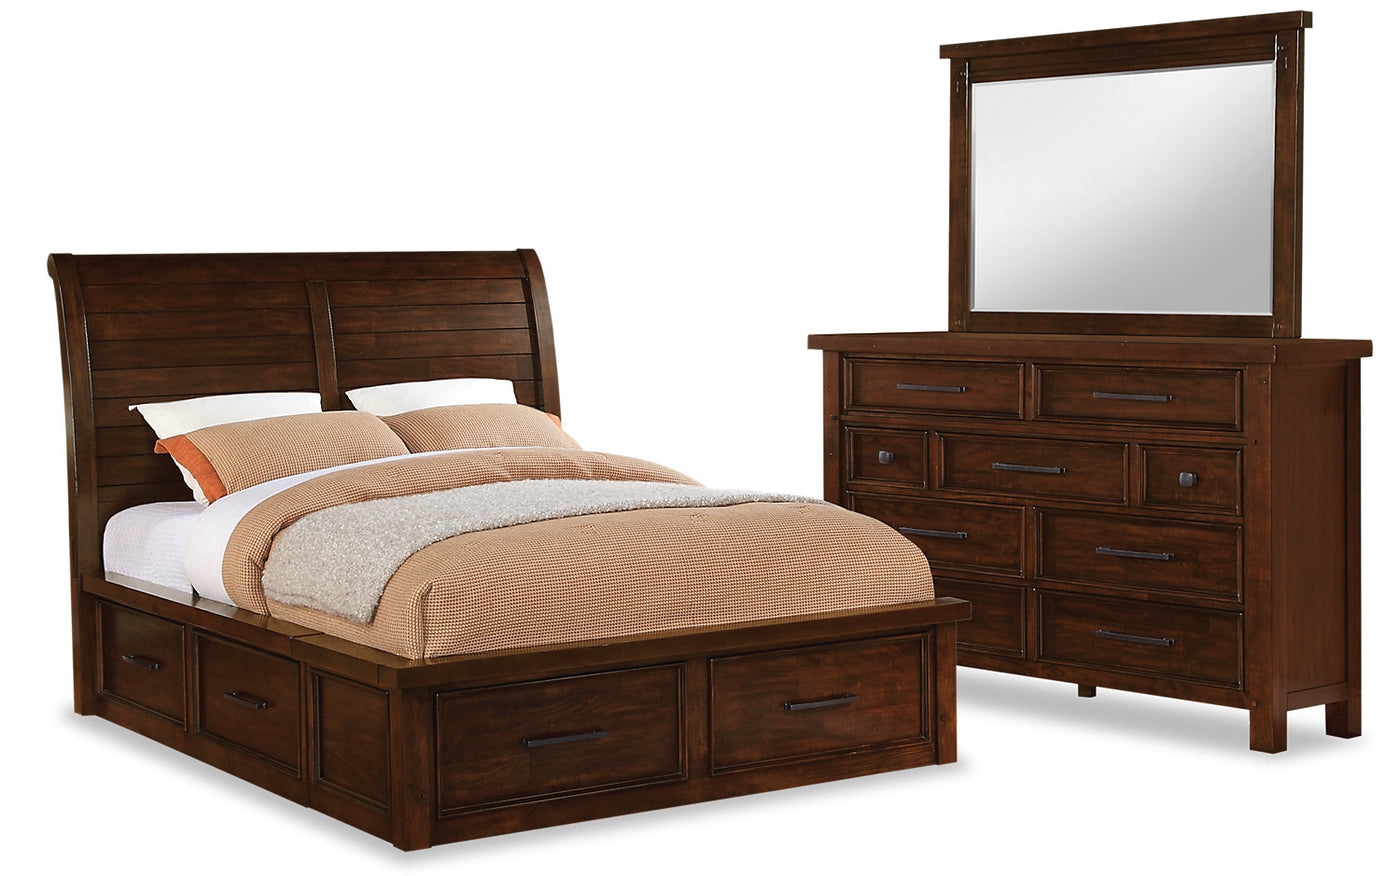 Sonoma 5-Piece King Storage Bedroom Set - Dark Brown